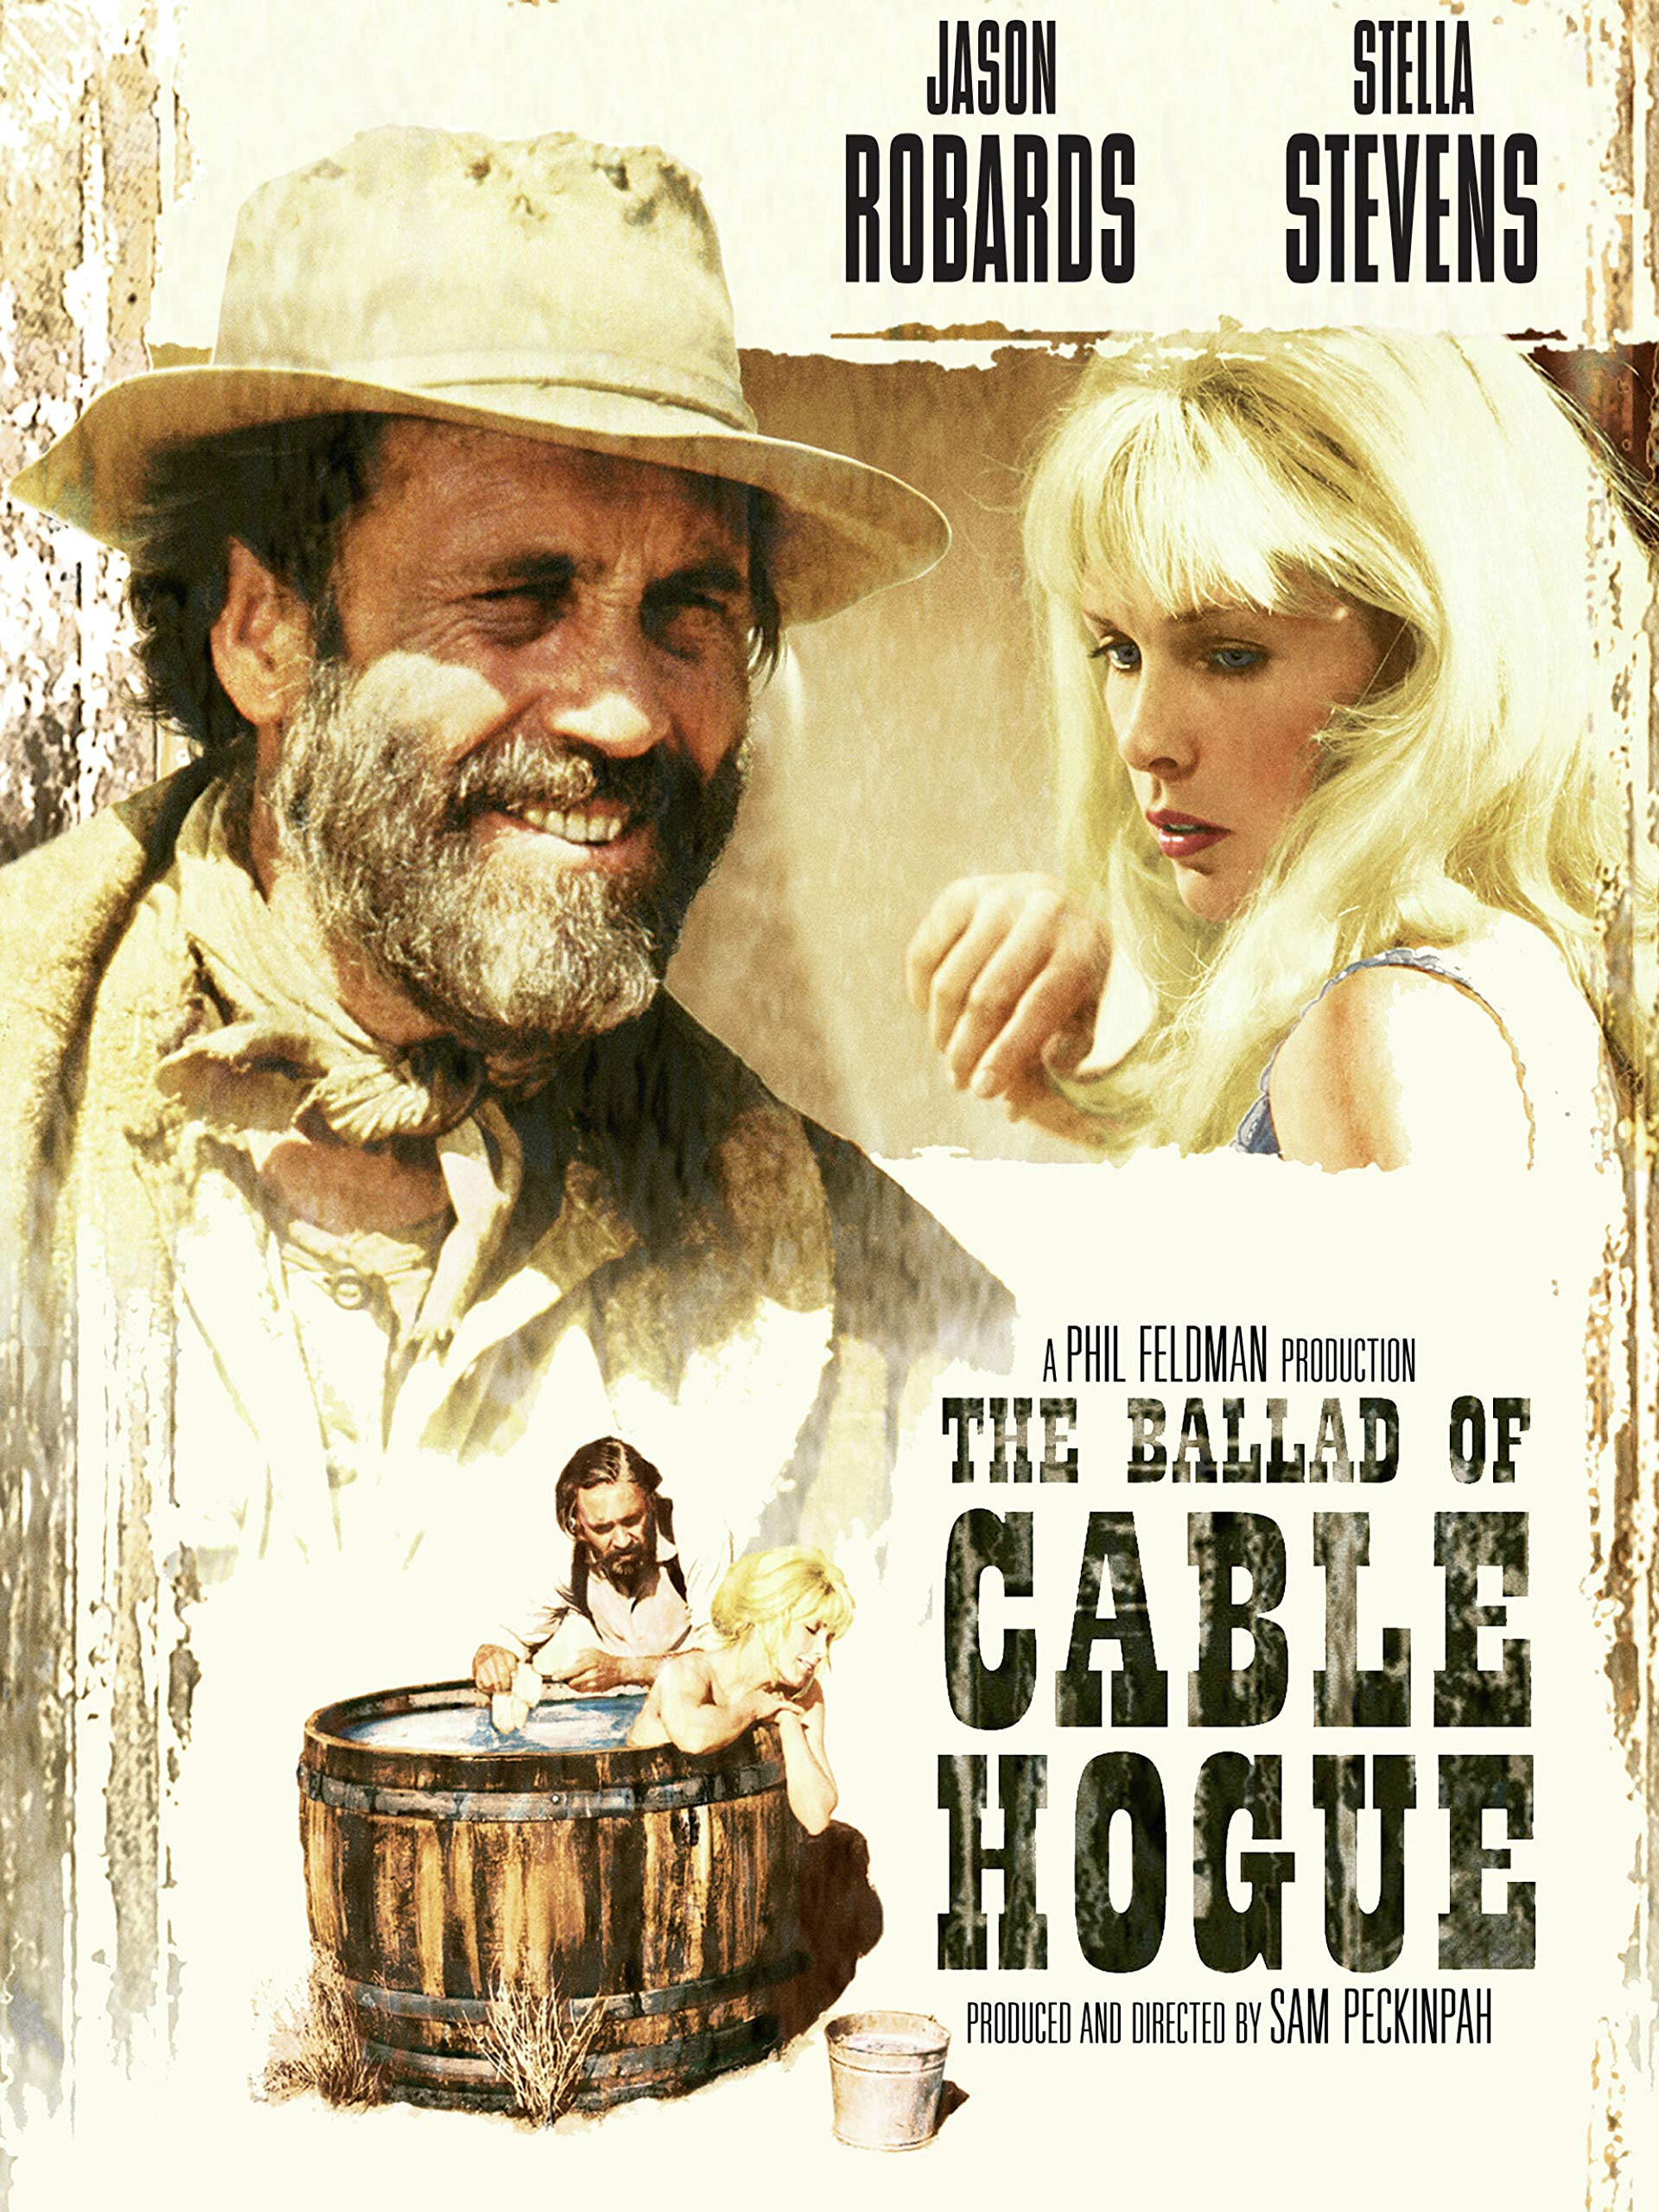 Watch The Ballad of Cable Hogue | Prime Video